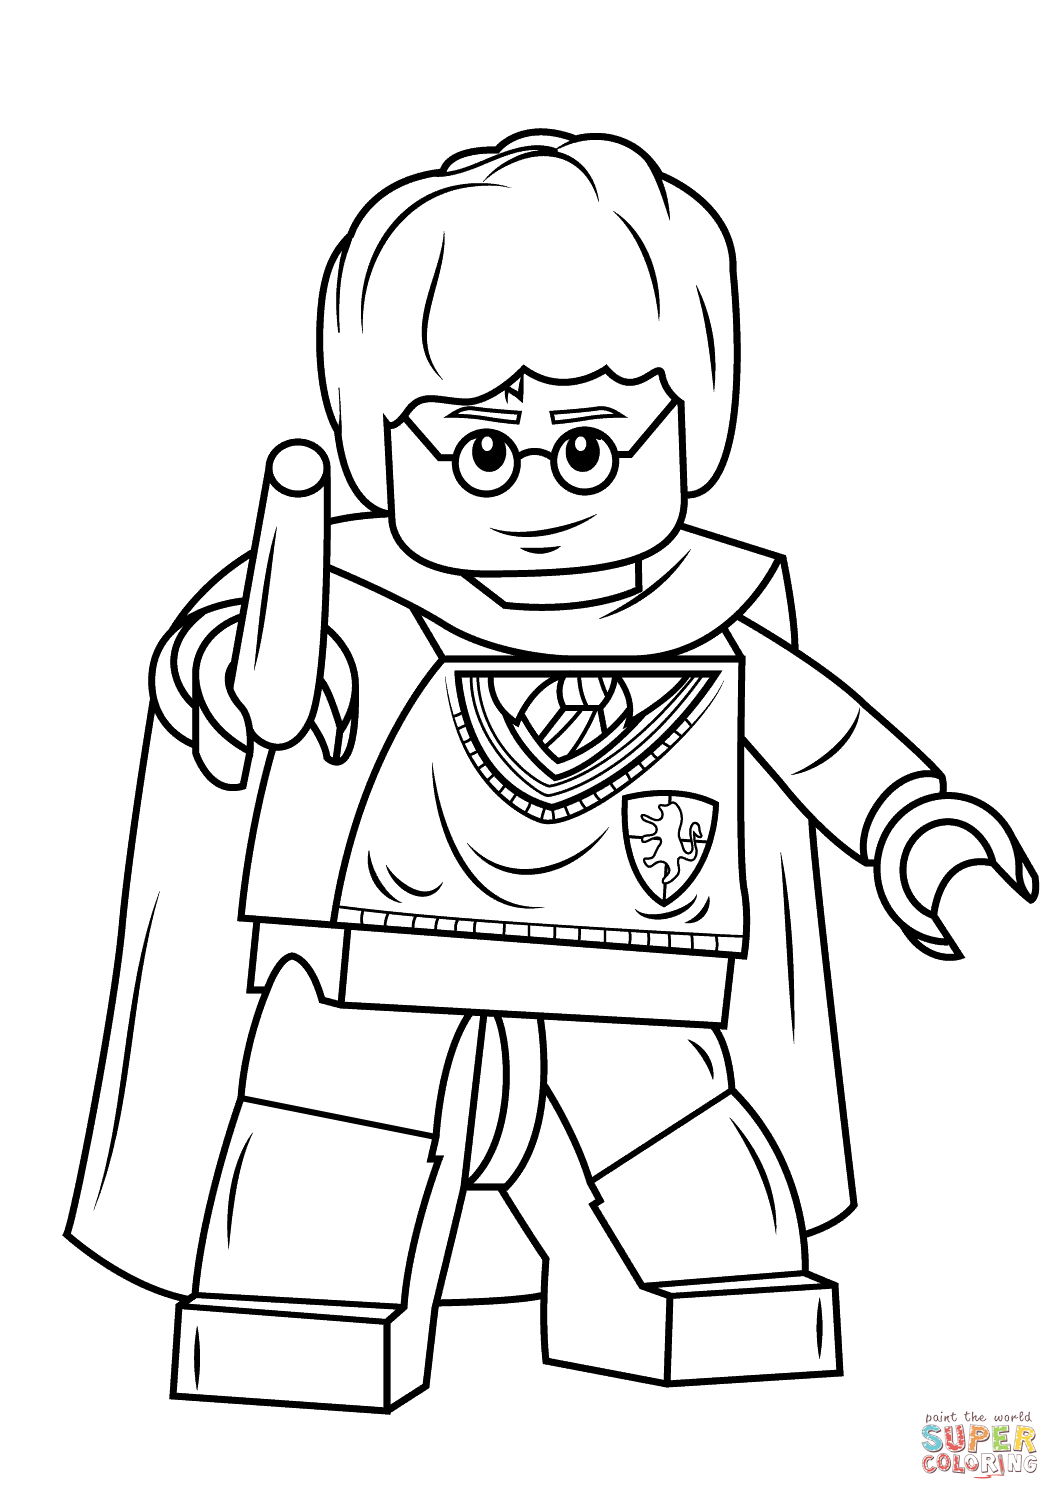 Lego Harry Potter With Wand Coloring Page Free Printable Harry Potter Coloring Pages Lego Coloring Pages Lego Coloring